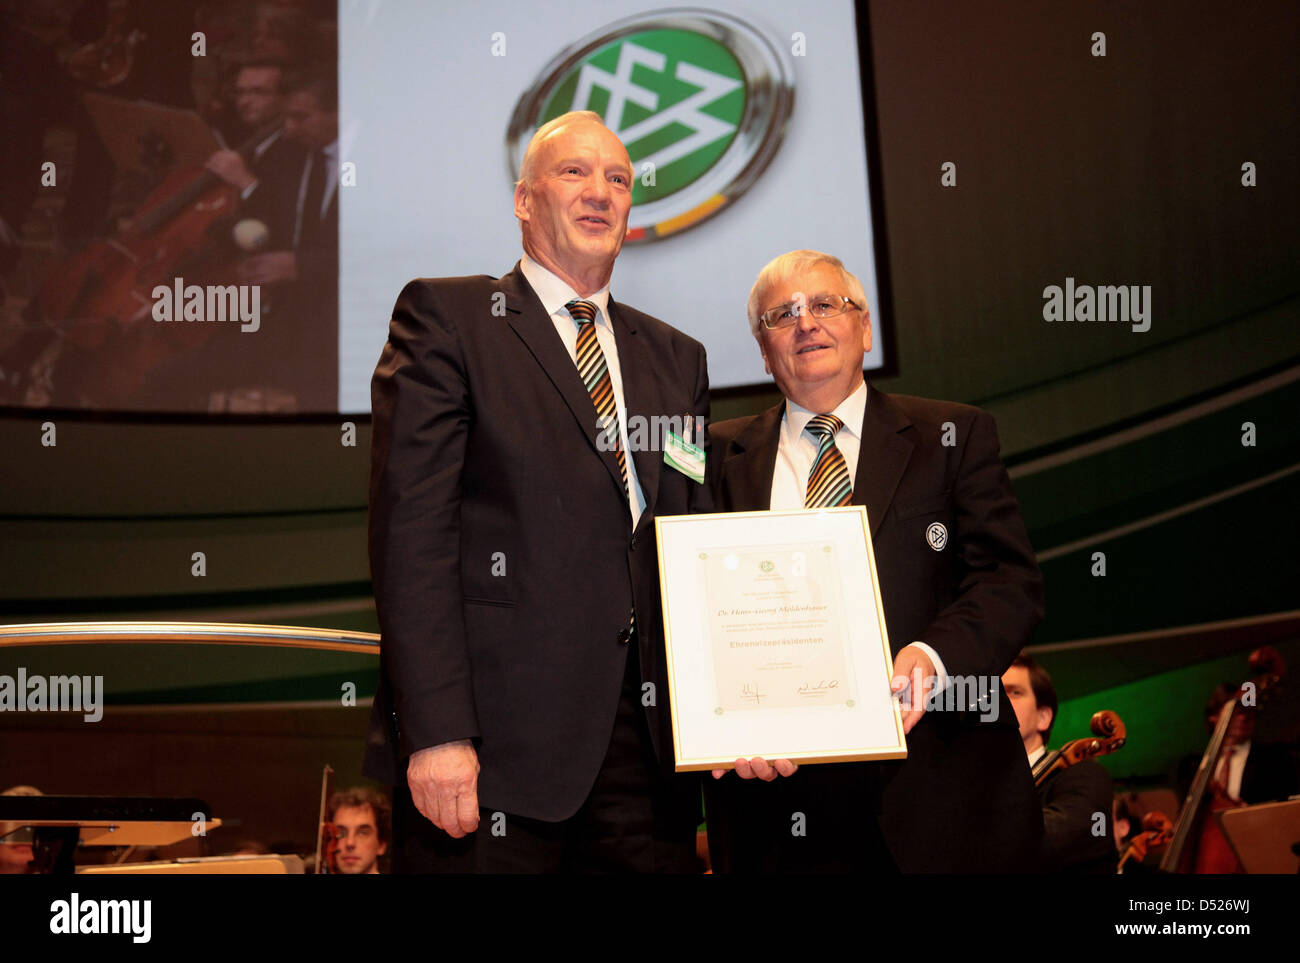 DFB-Vice-President Hans-Georg Moldenhauer (L) is honored by Theo Zwanziger, president of the German Football Association - Stock Image